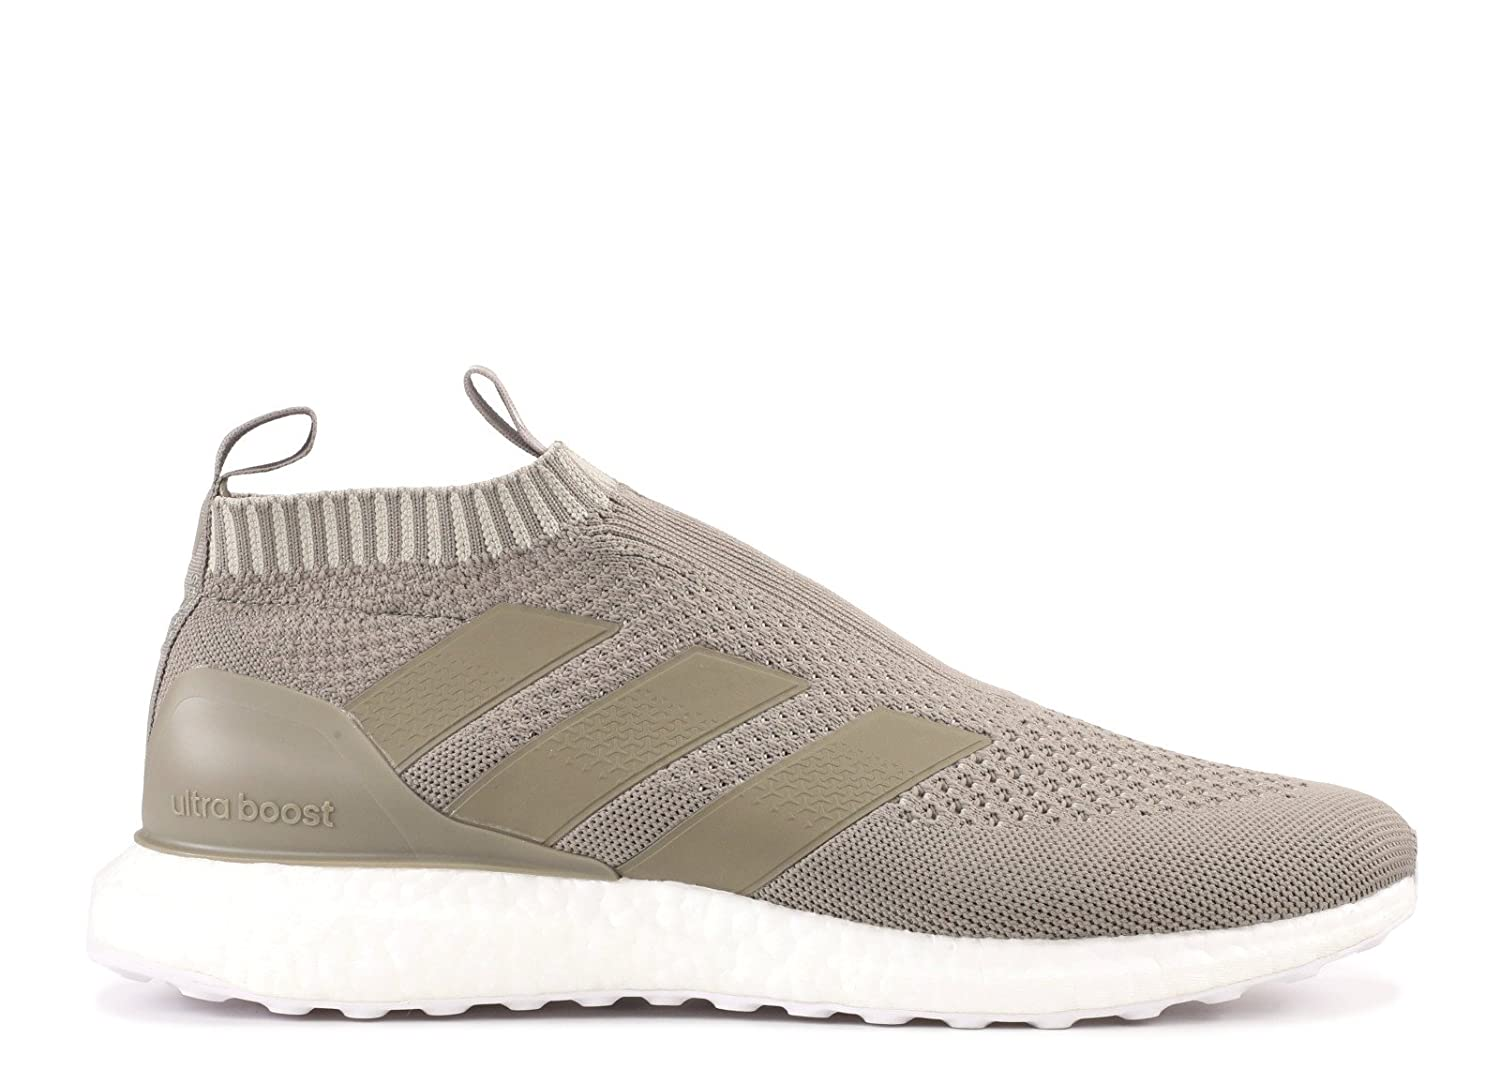 half off 68234 bfa4f Amazon.com | adidas Ace 16+ Purecontrol Ultraboost - Size 9 ...